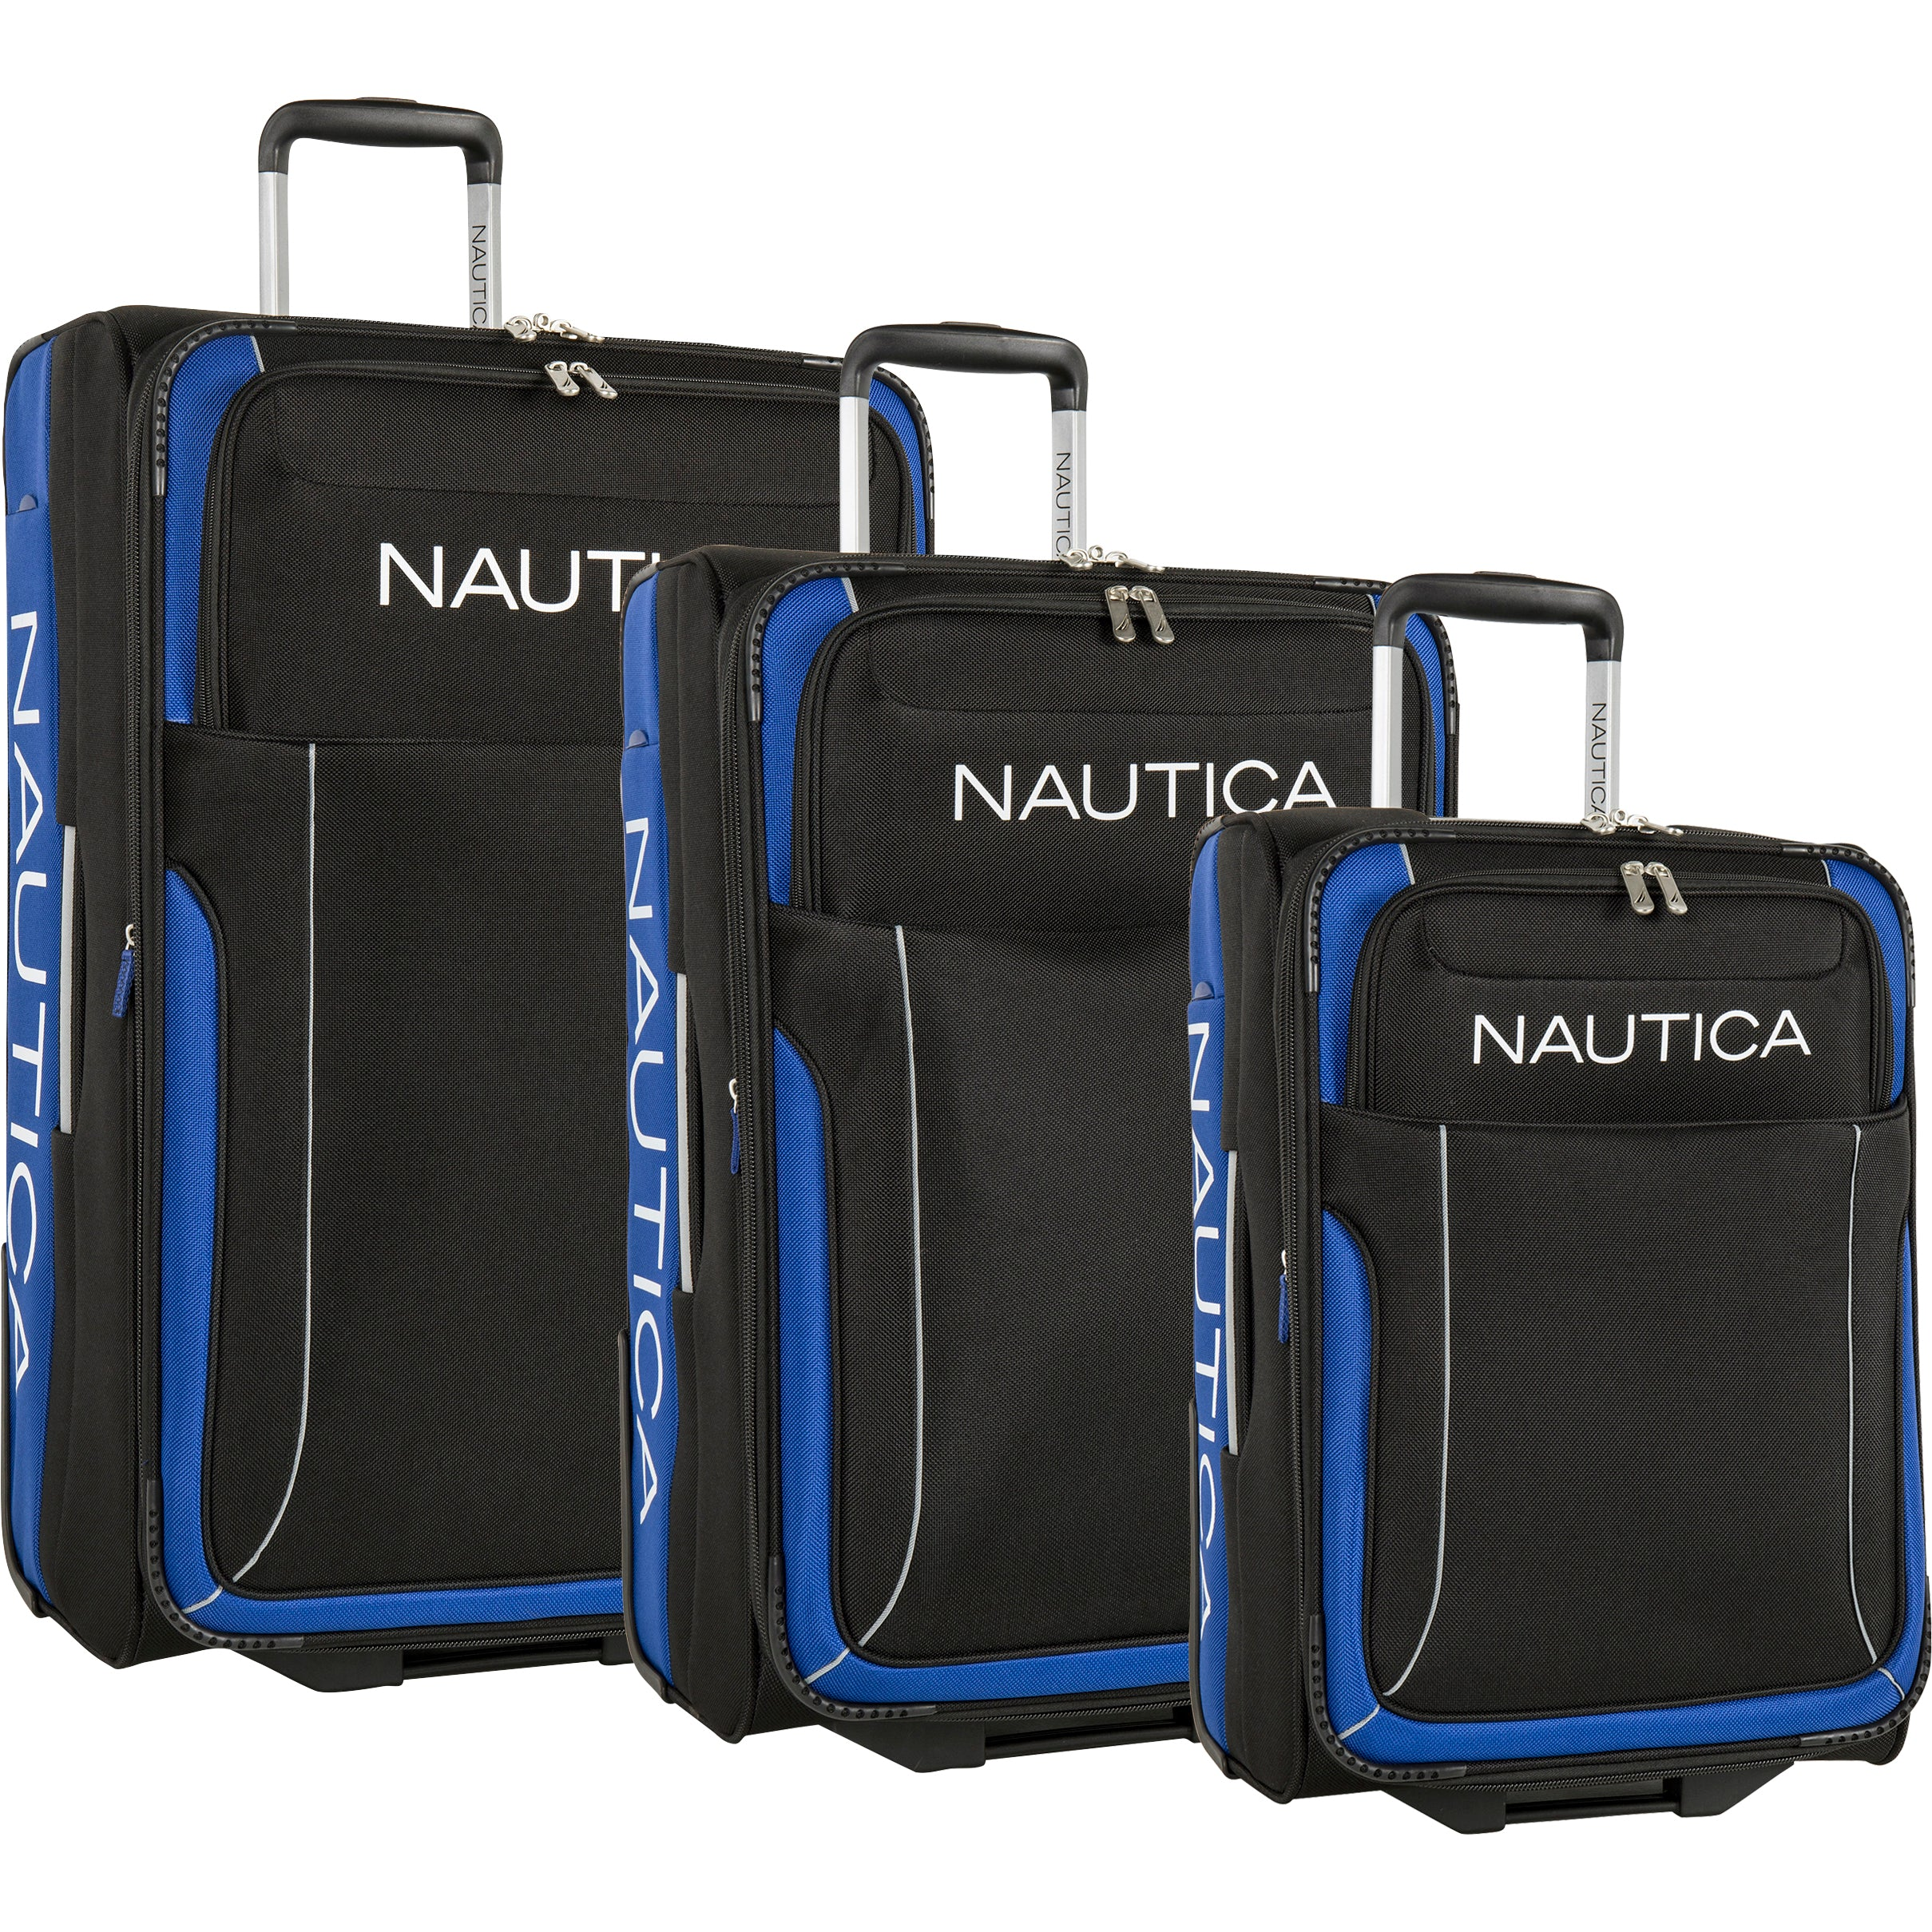 d6b1265a4 Nautica Point of Sail 3 Piece Expandable Luggage Set – Luggage Guy